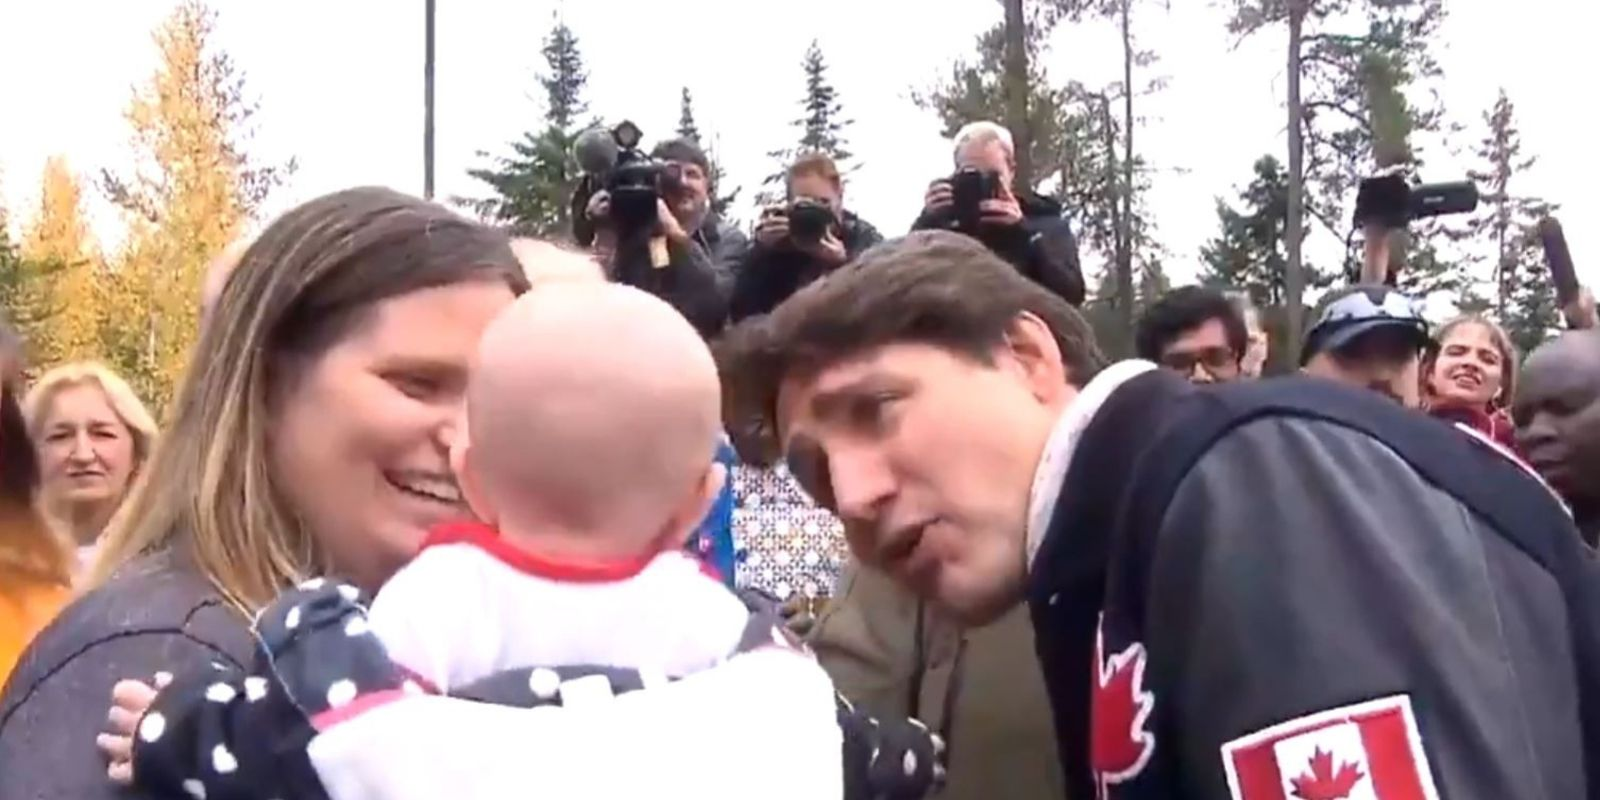 WATCH: Trudeau brags to crying baby about his eyebrows